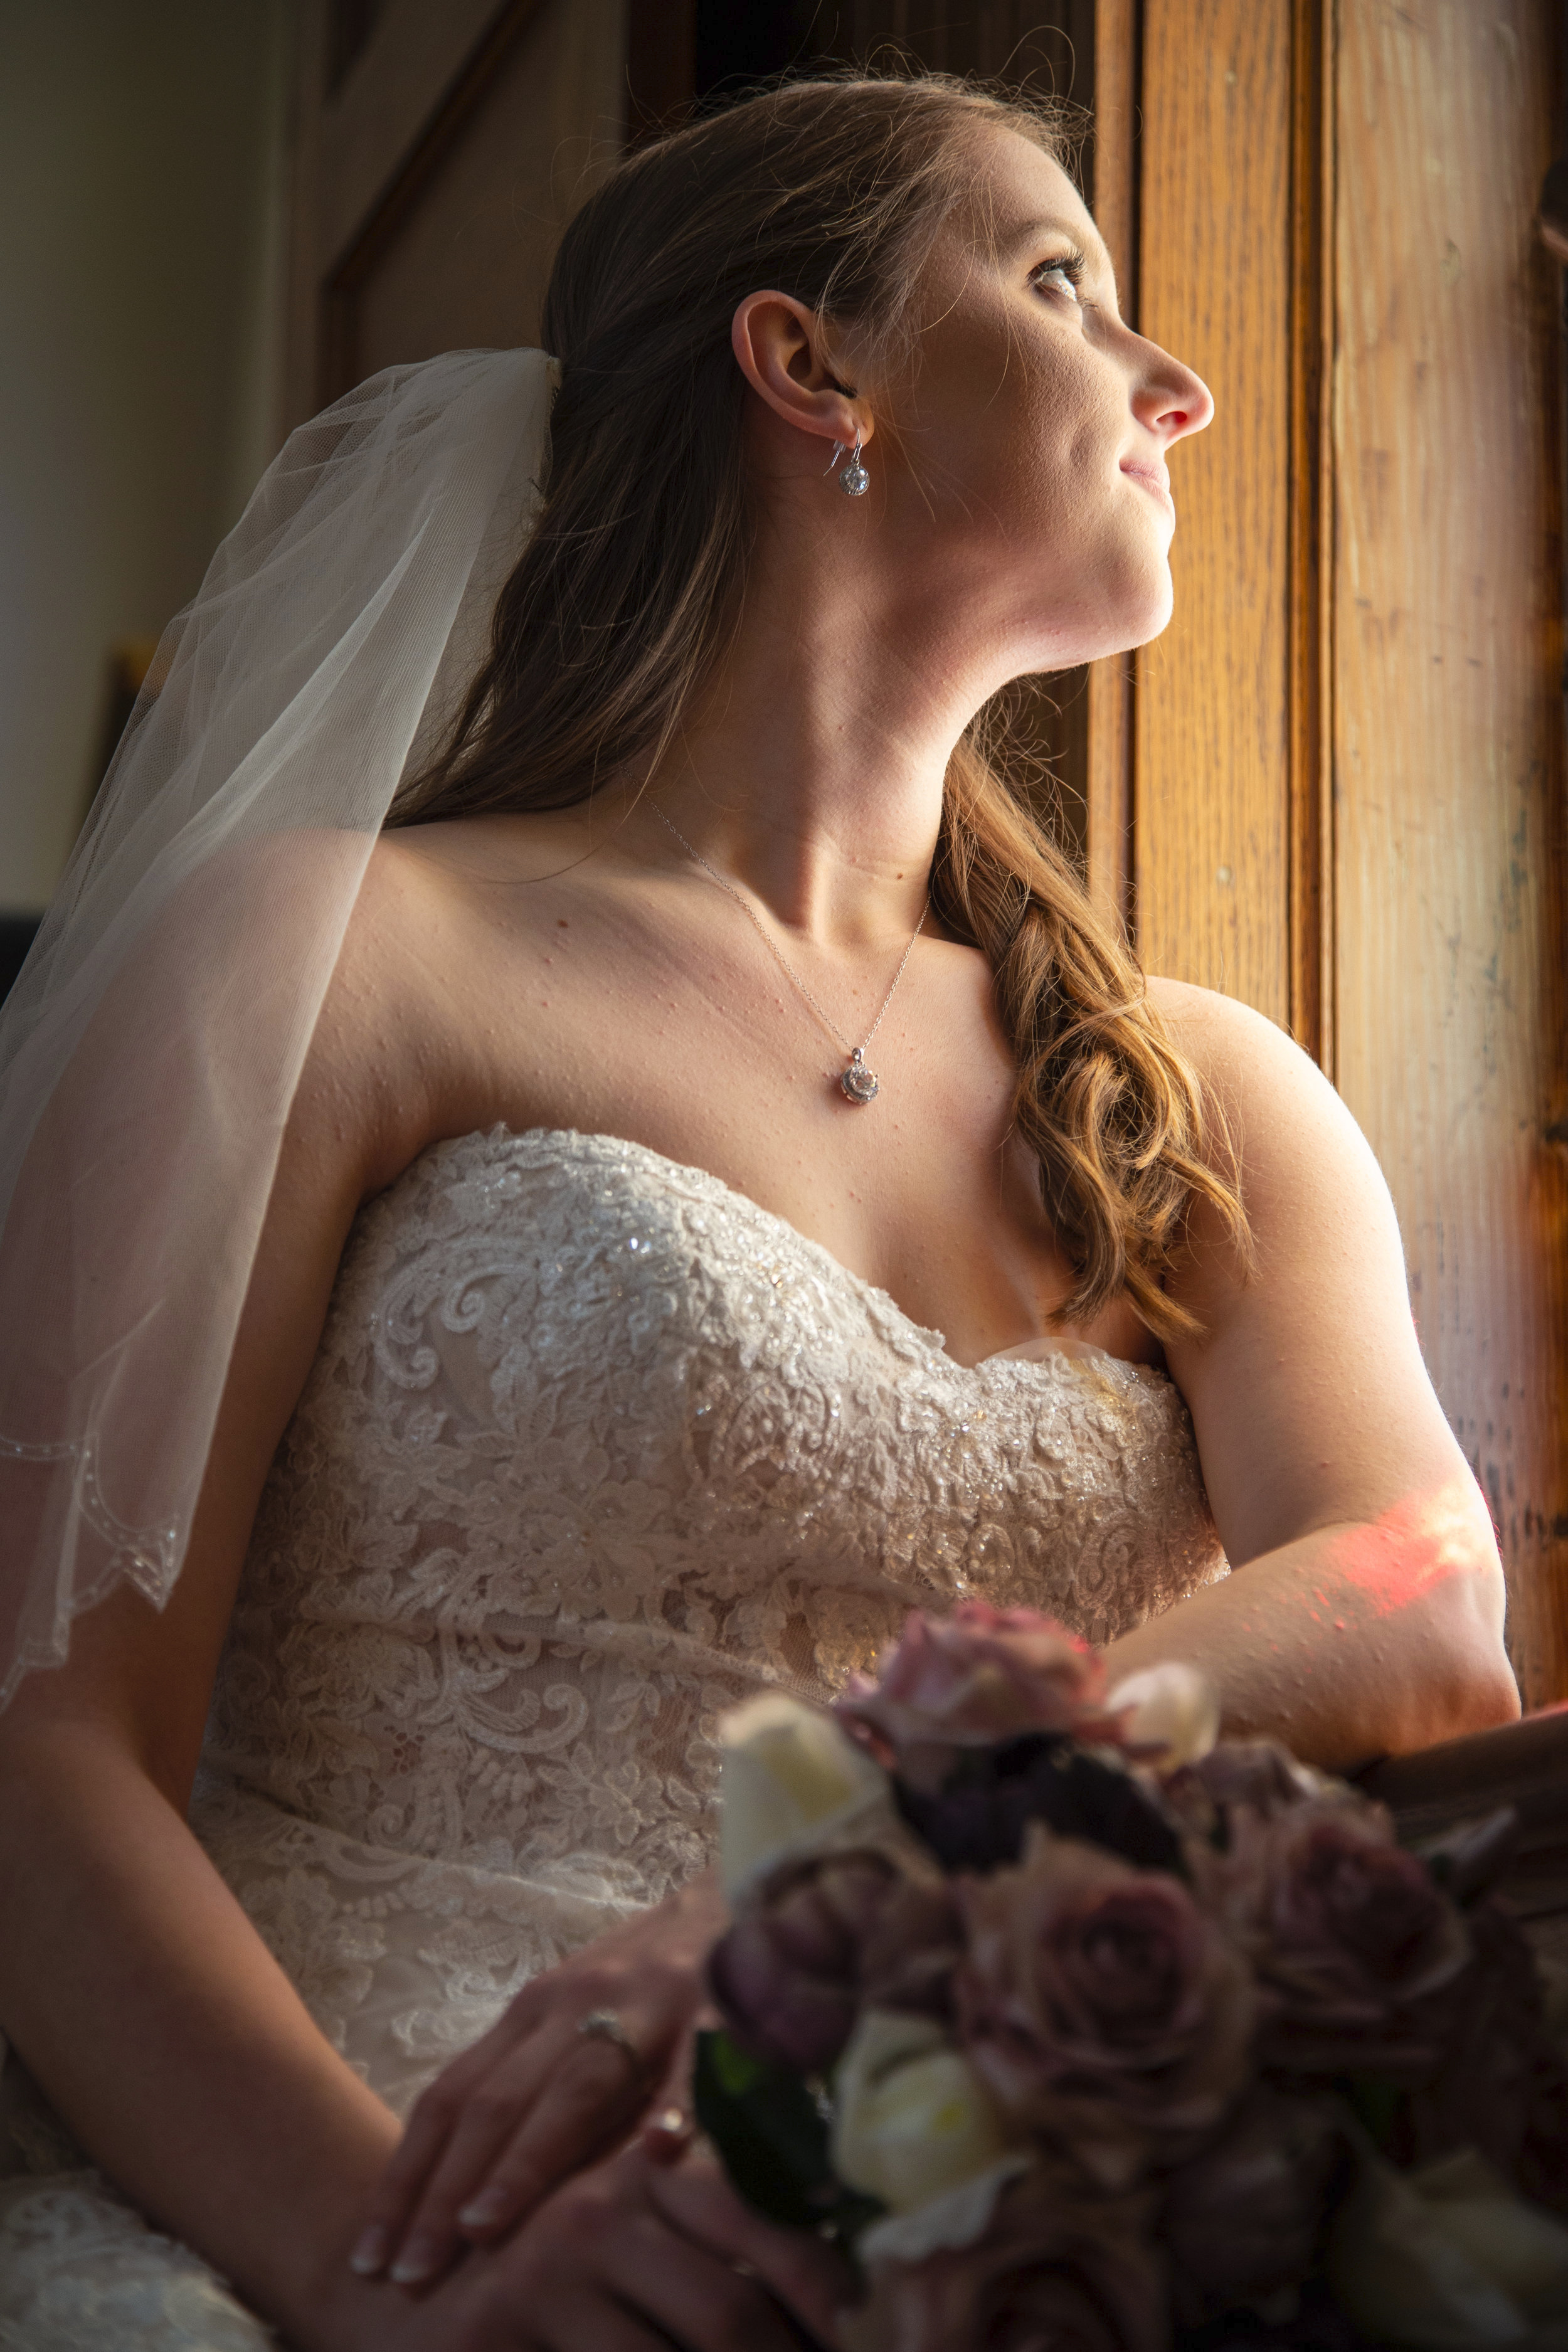 I just want to enjoy this moment and feel like a bride, not a wedding planner. - -Cassidy Helmick